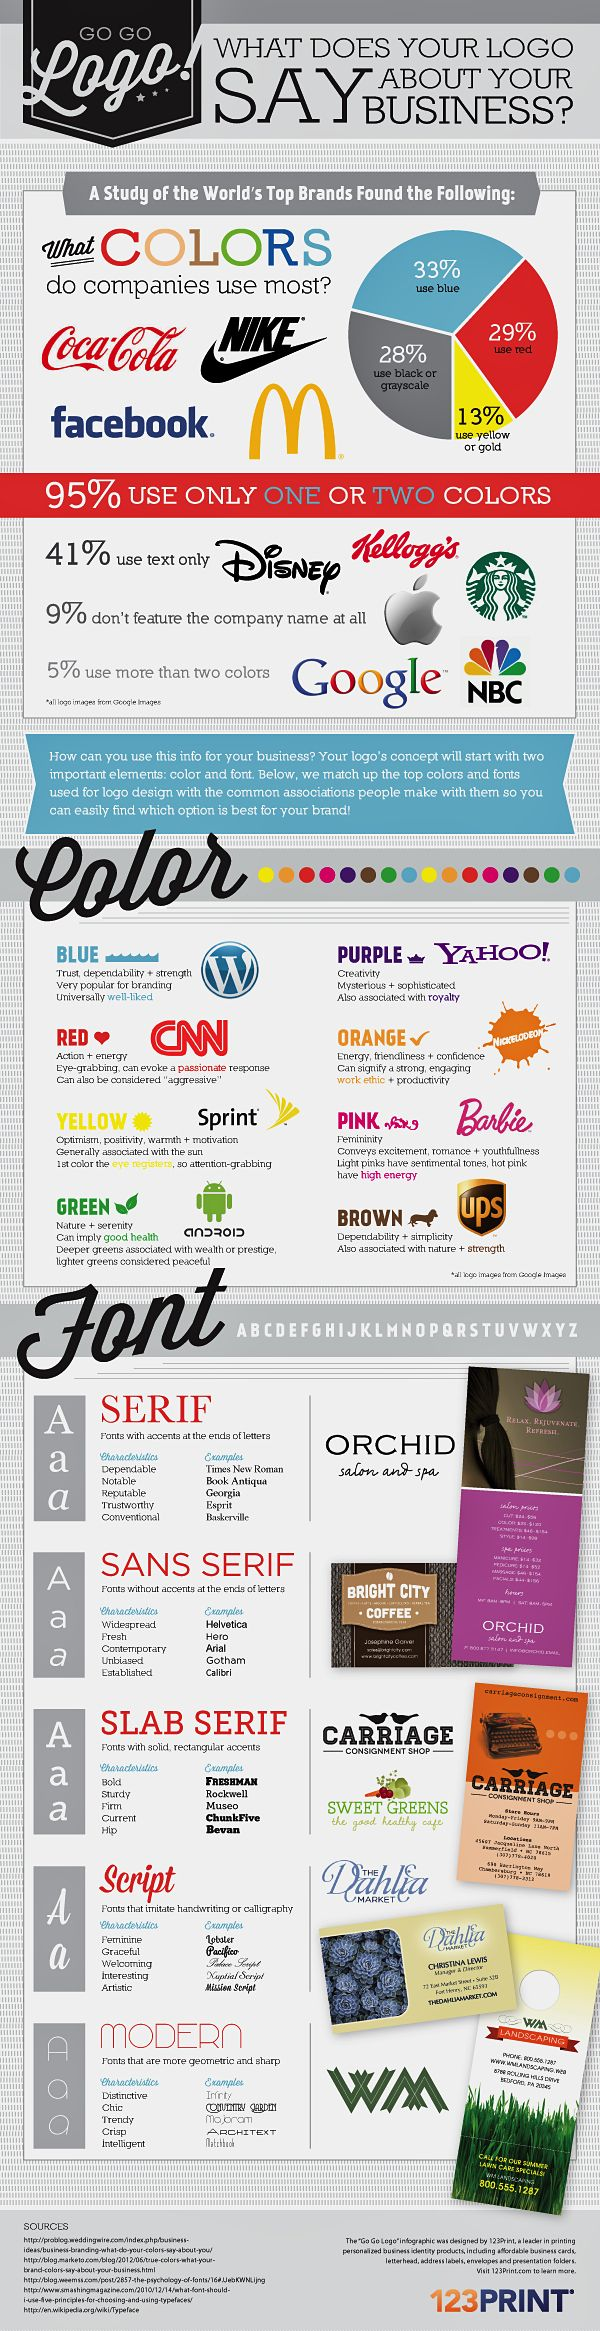 What a company logo says about your brand